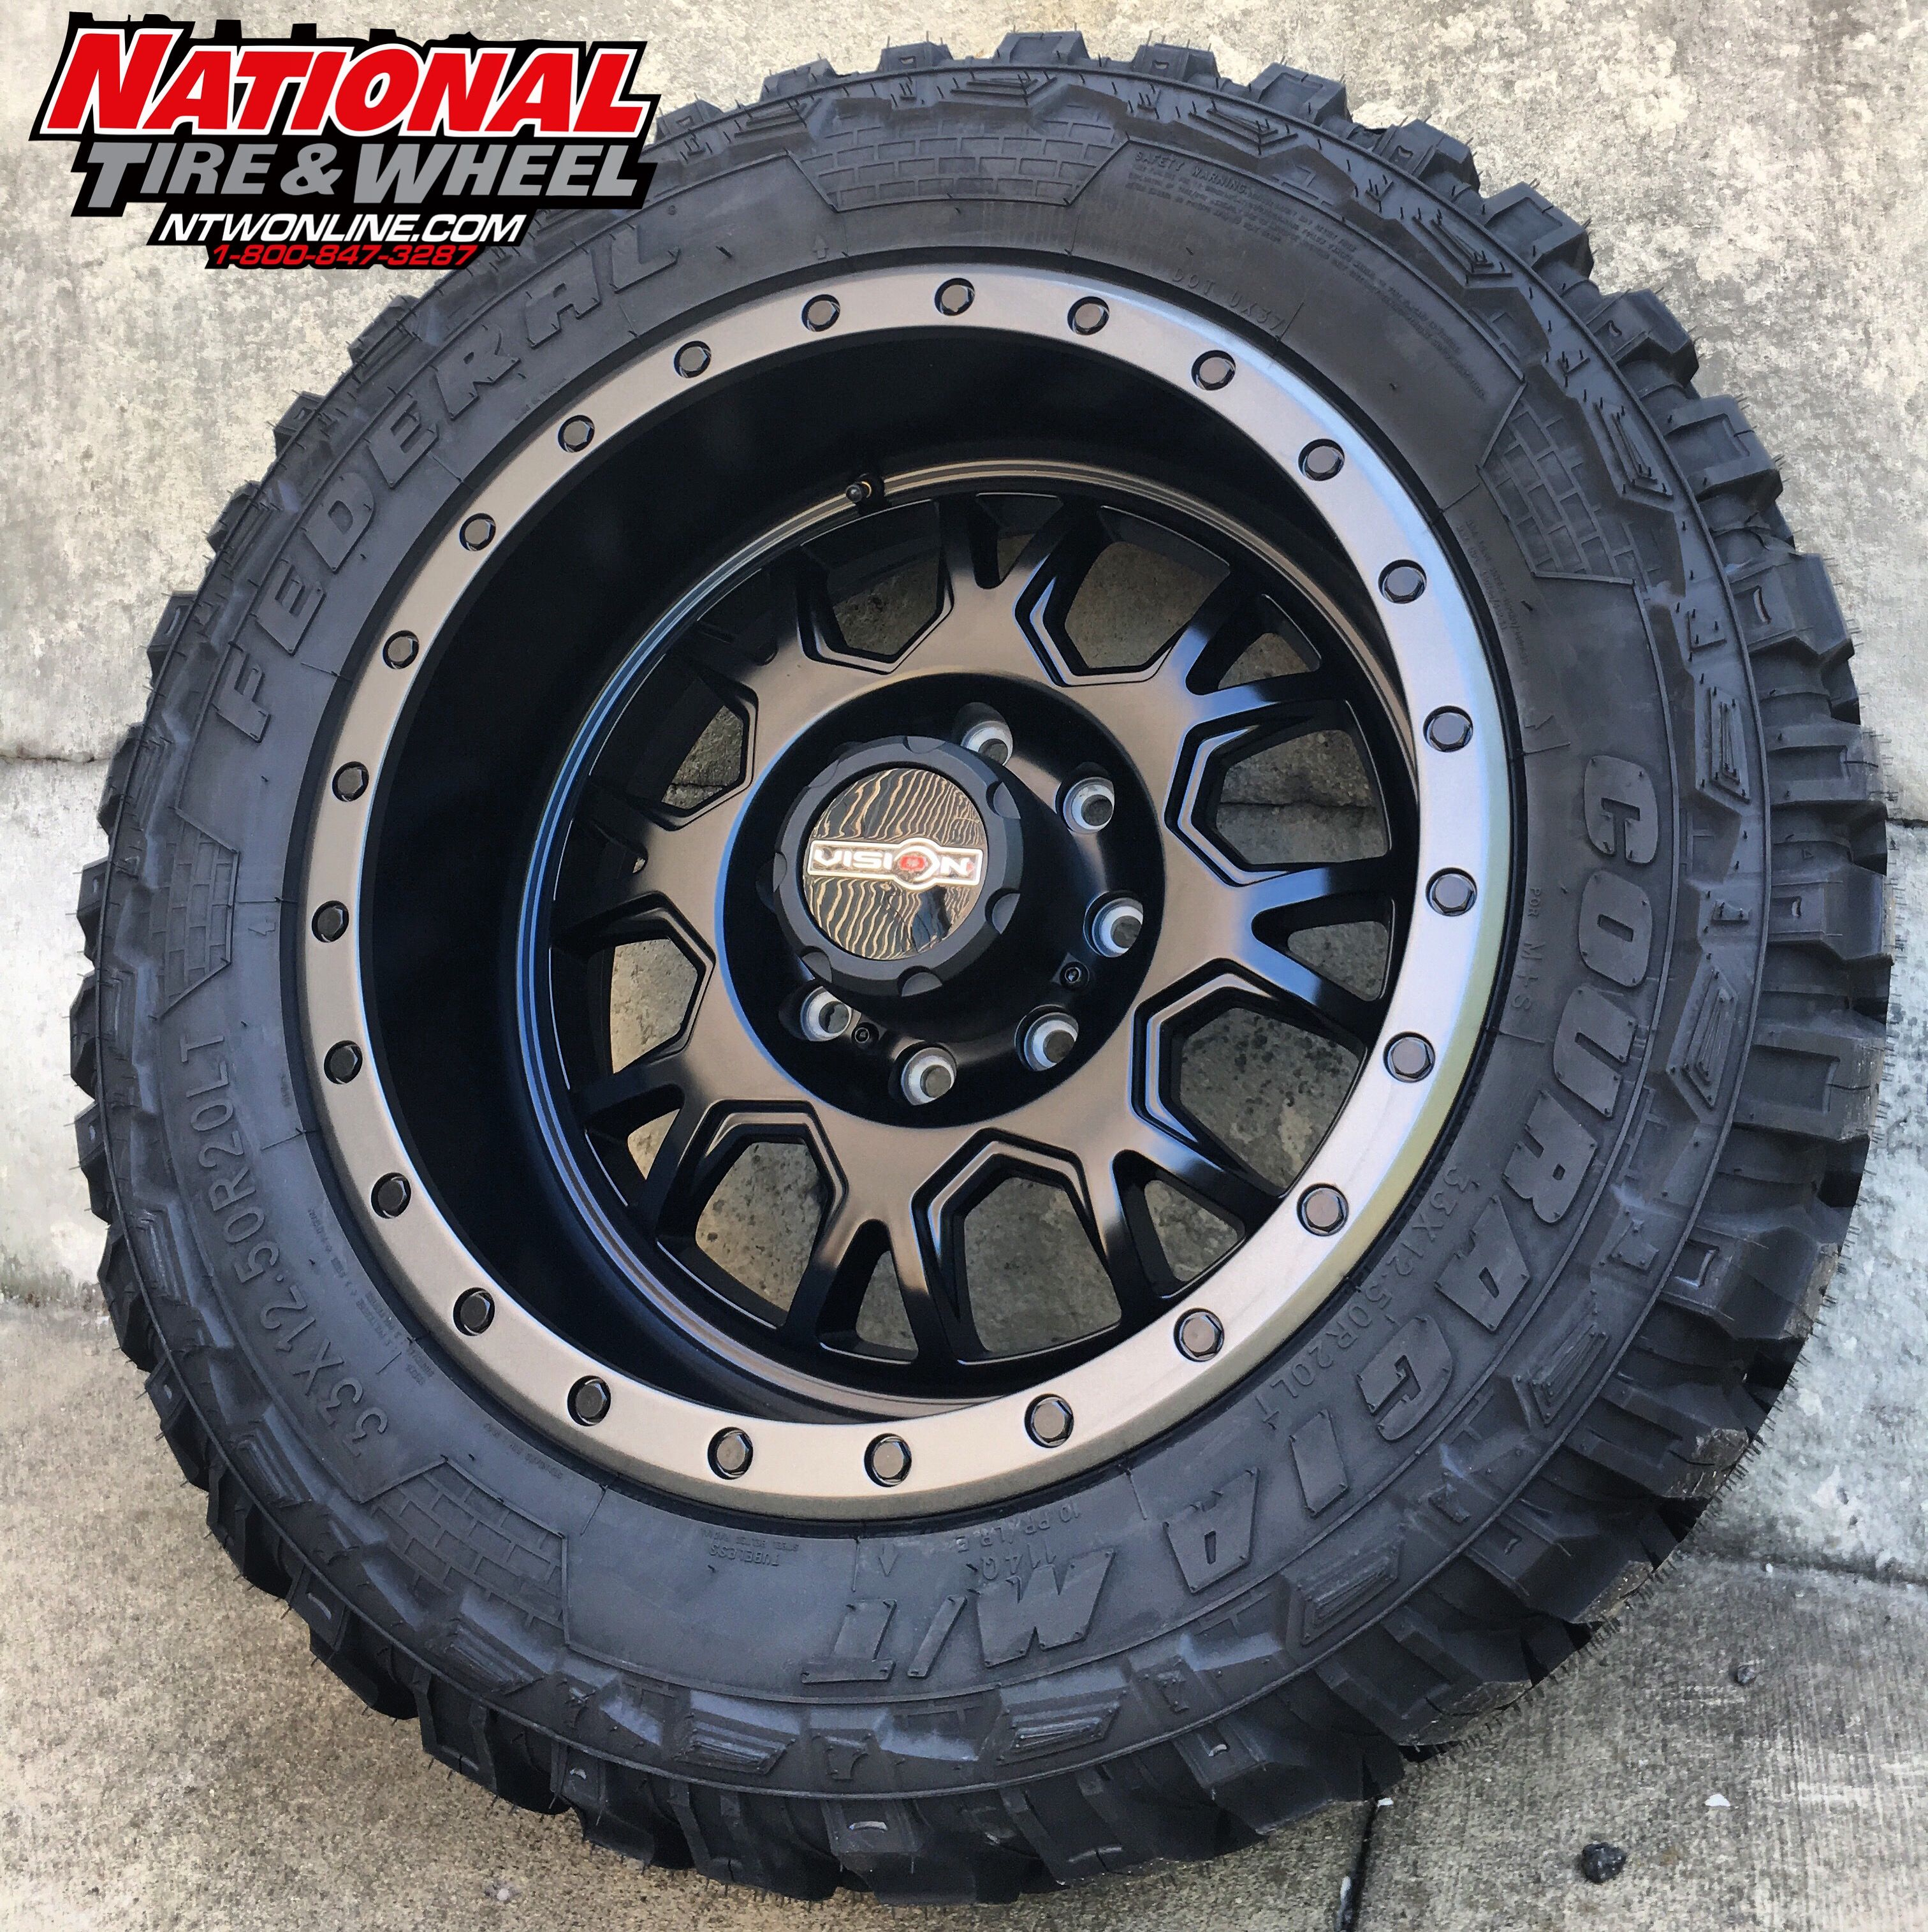 20X10 Vision Wheel GV8 Invader mounted up to a 33X12 50R20 Federal